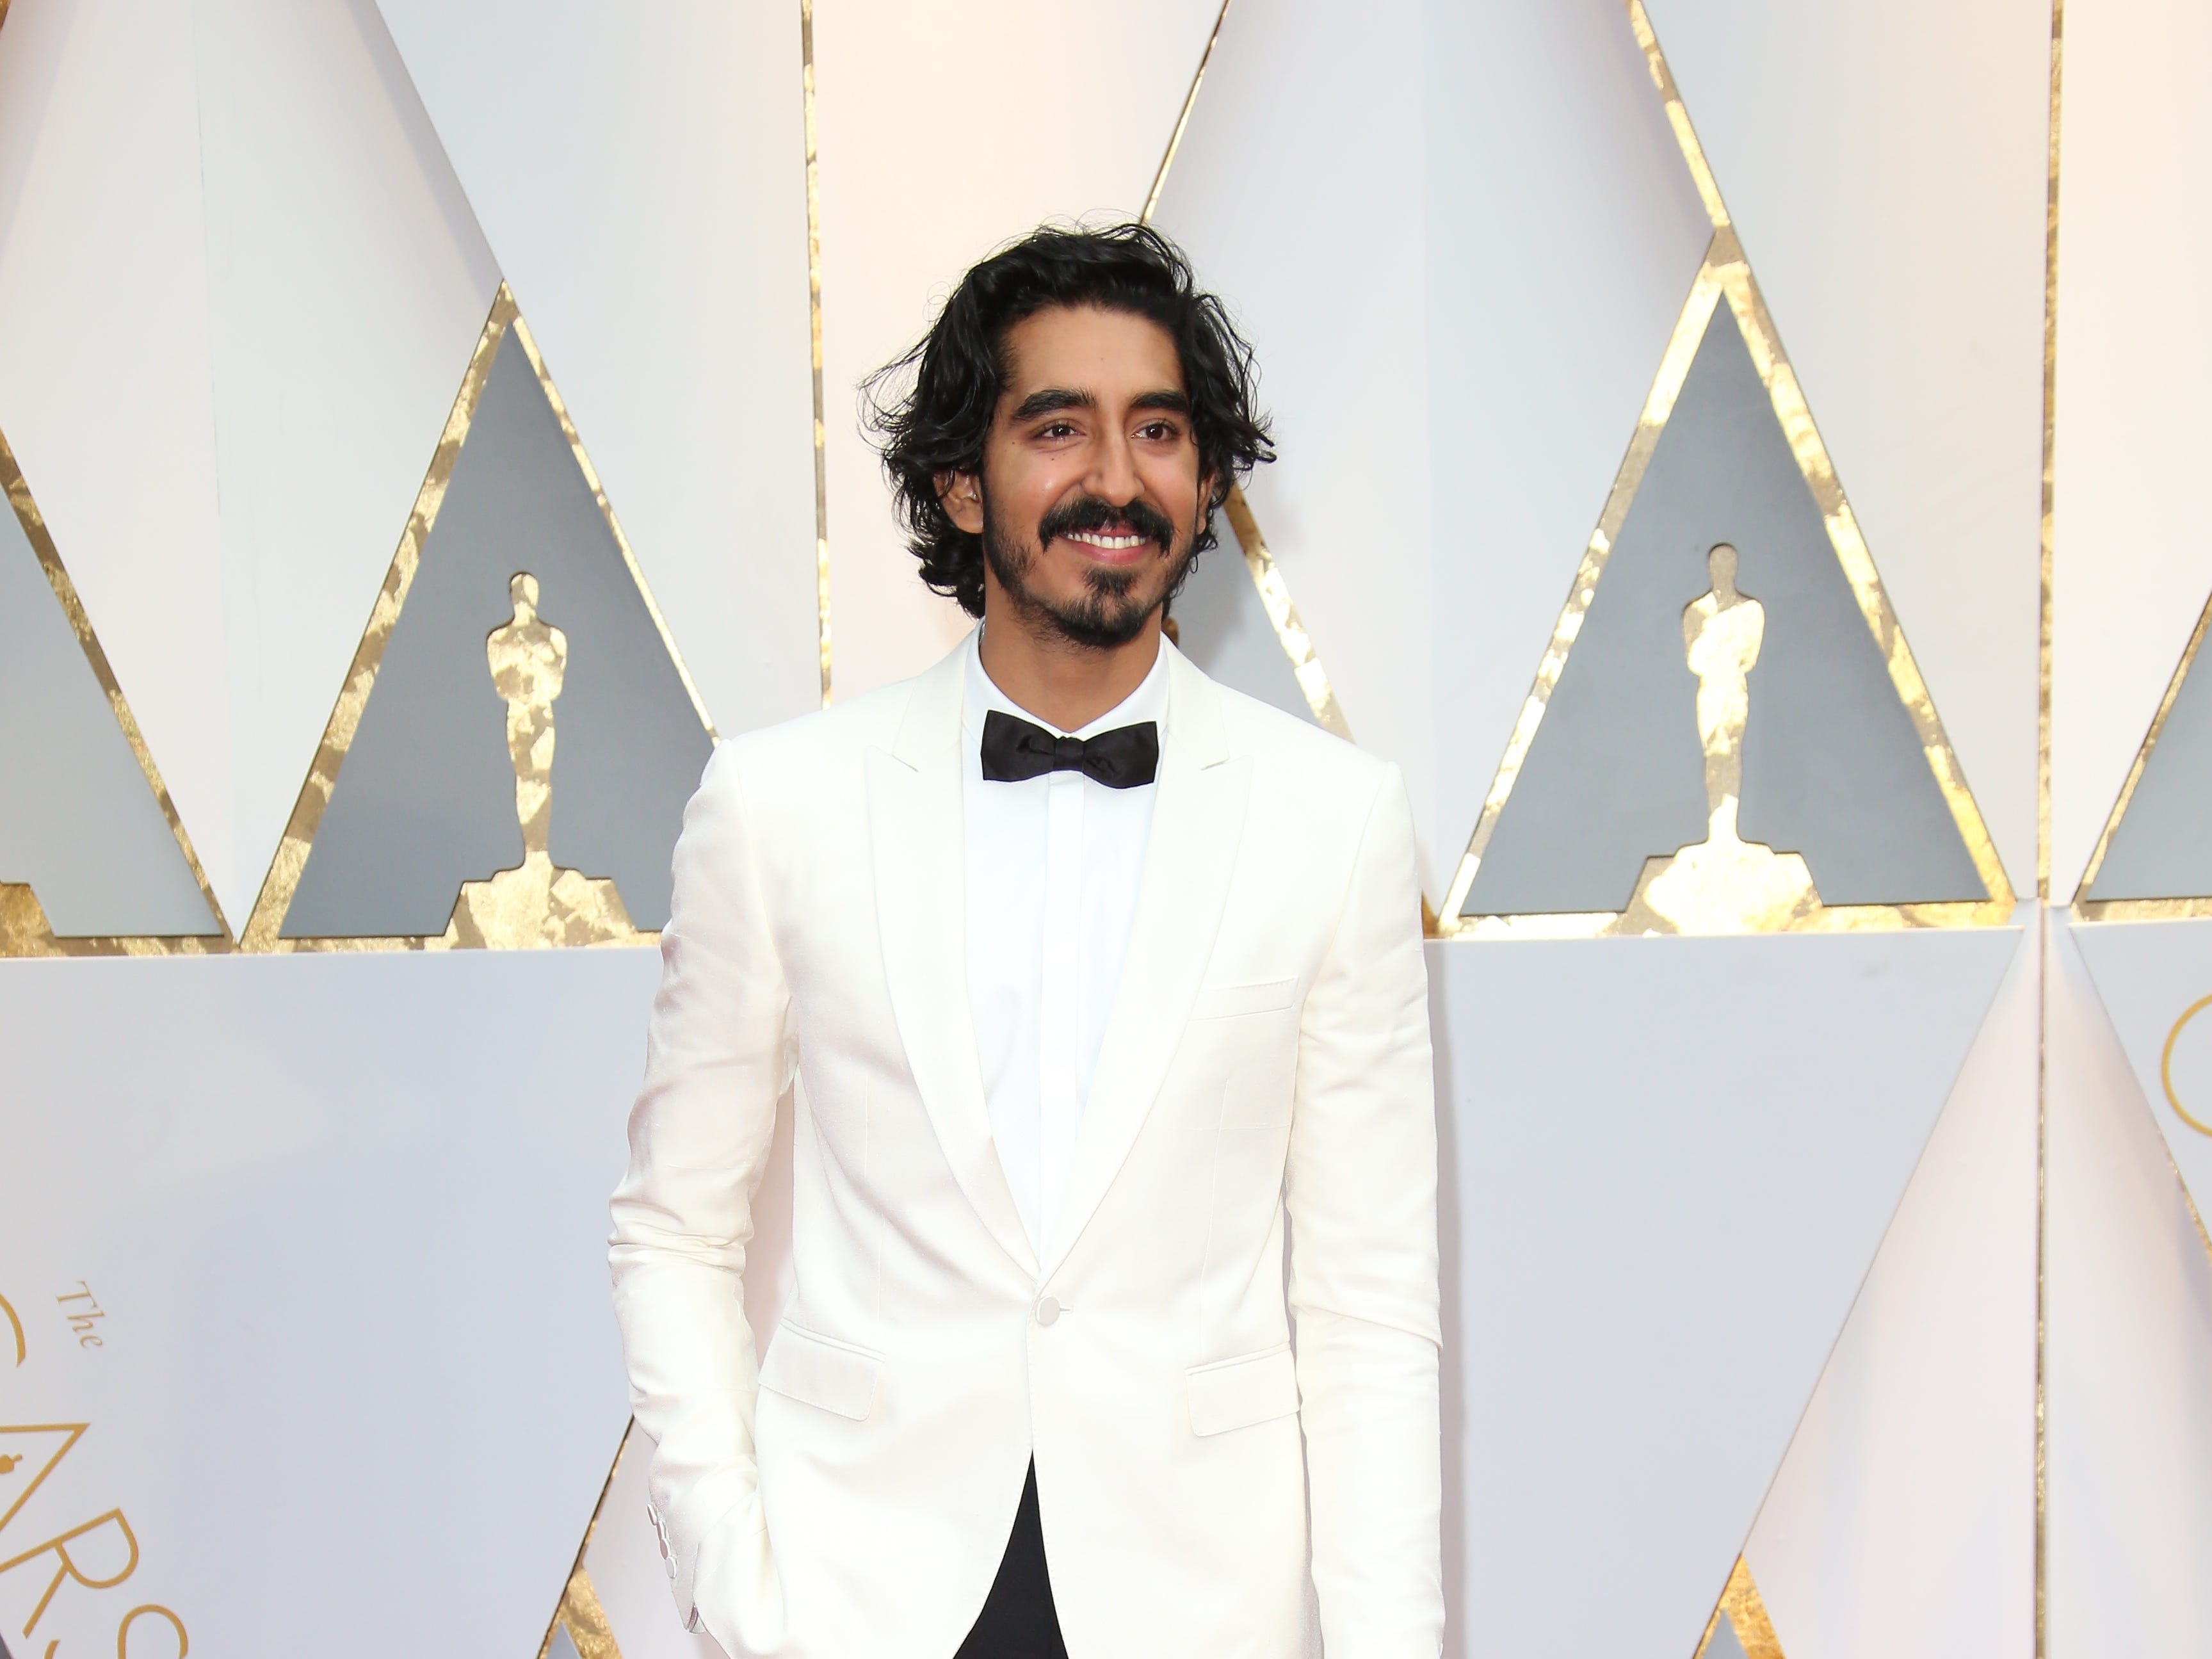 Feb 26, 2017; Hollywood, CA, USA; Dev Patel on the red carpet during the 89th Academy Awards at Dolby Theatre. Mandatory Credit: Dan MacMedan-USA TODAY NETWORK ORG XMIT: USATSI-357477 (Via OlyDrop)